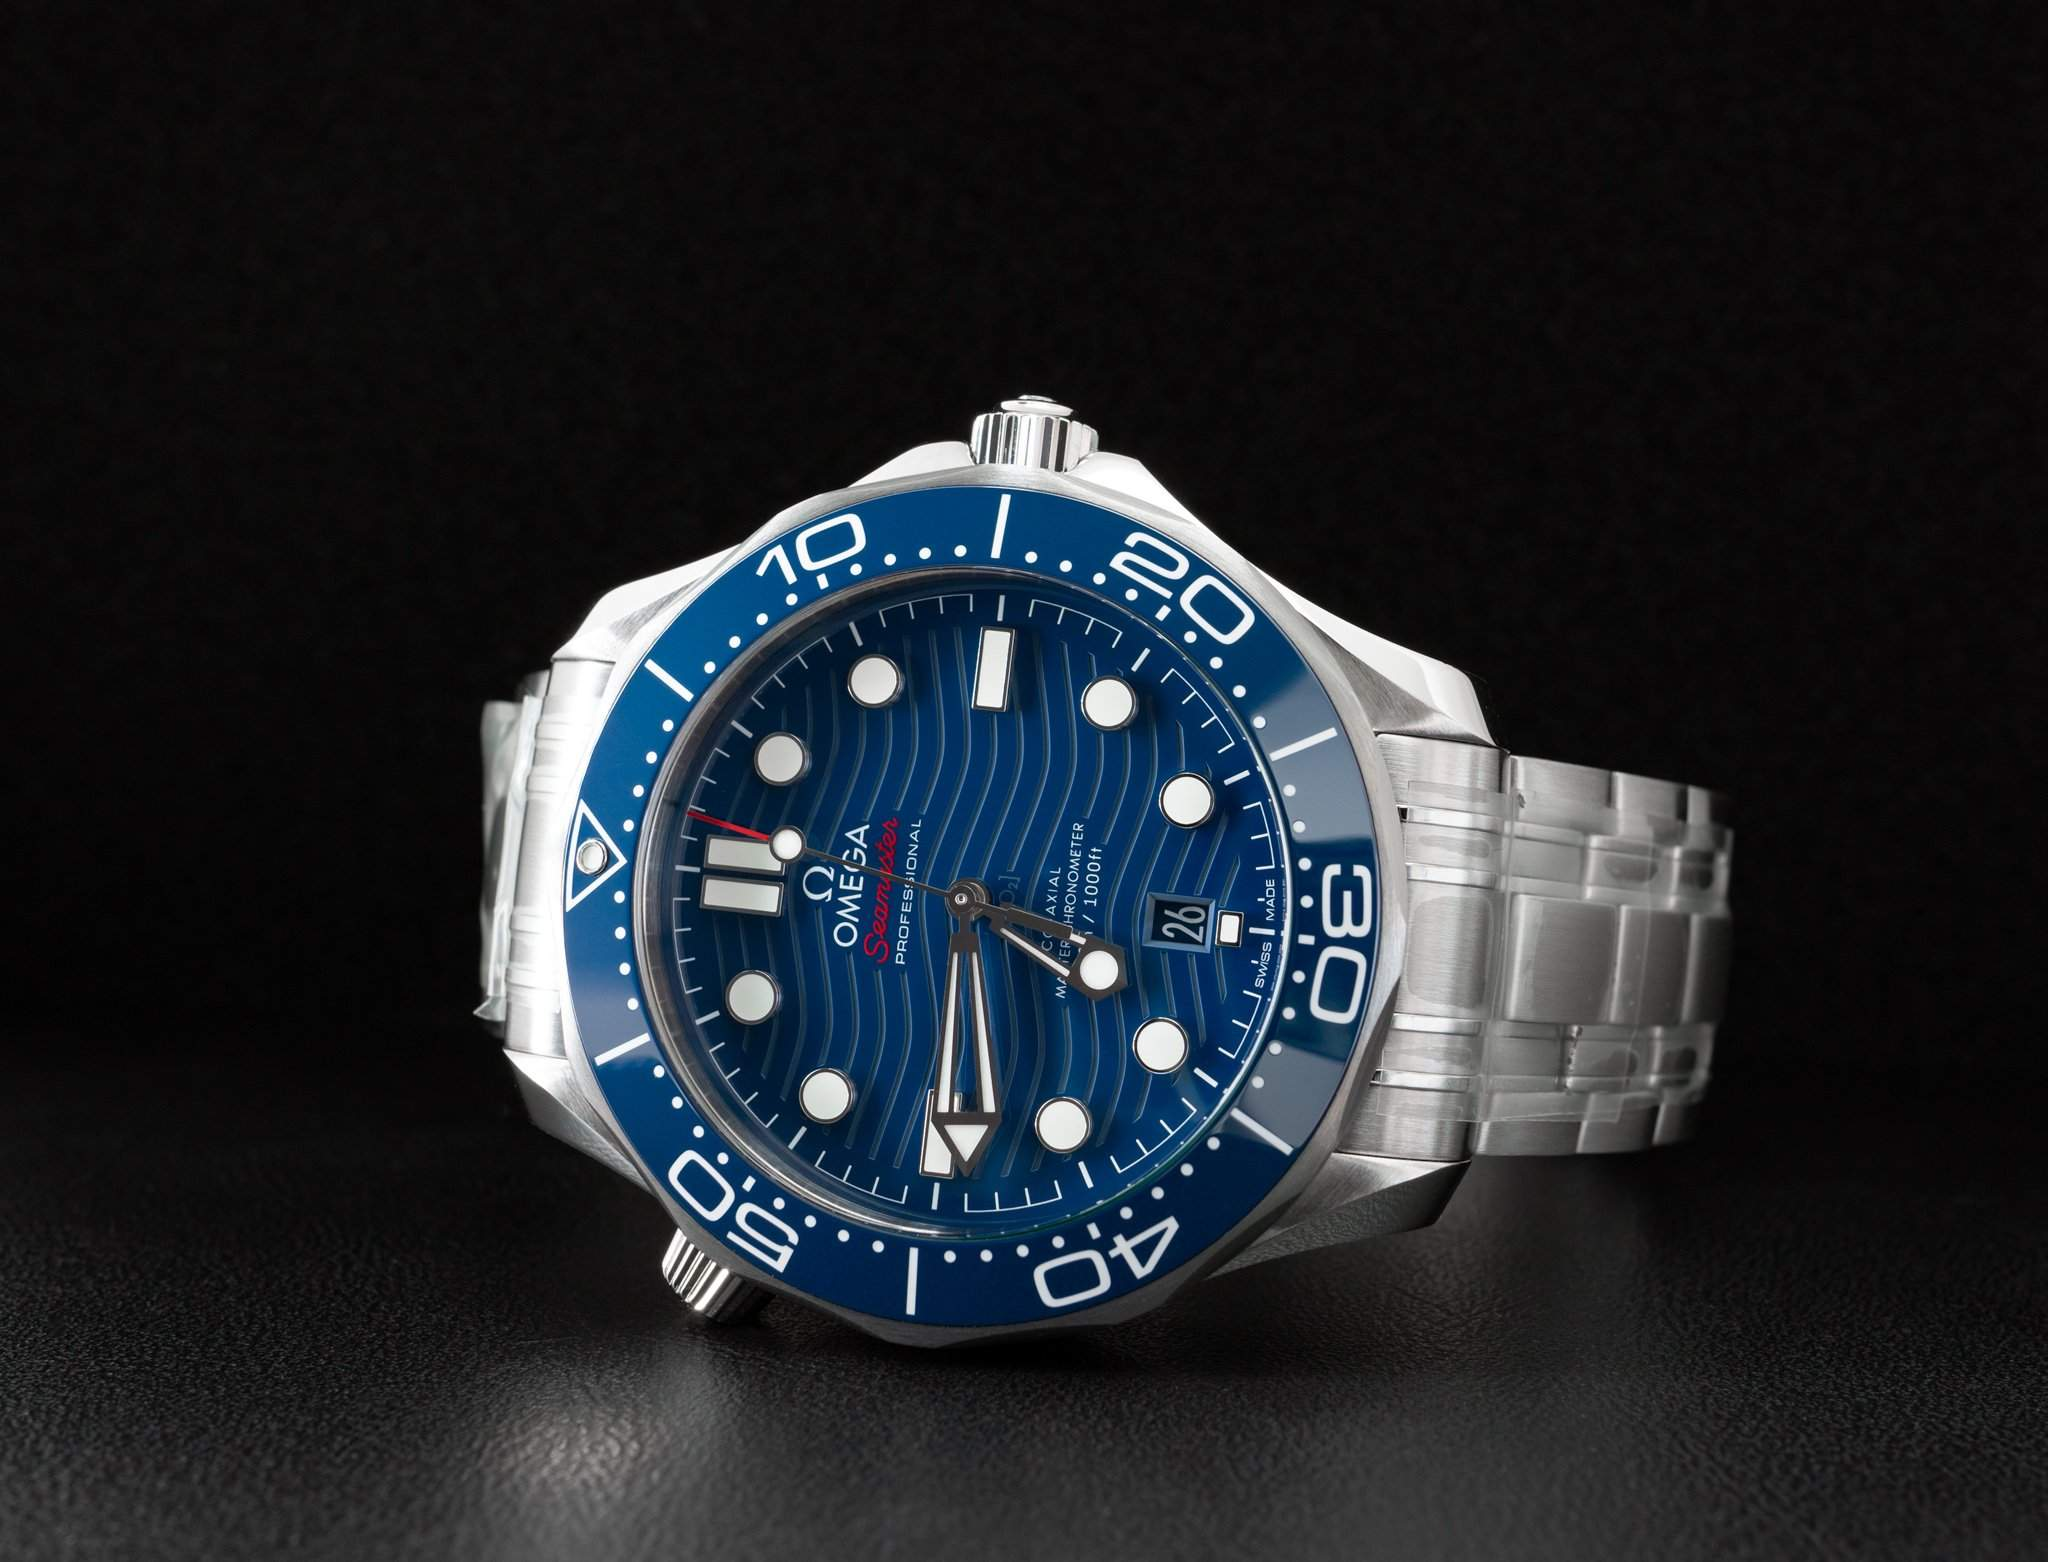 The Omega Seamaster 300M has a unique and refreshing dial design.